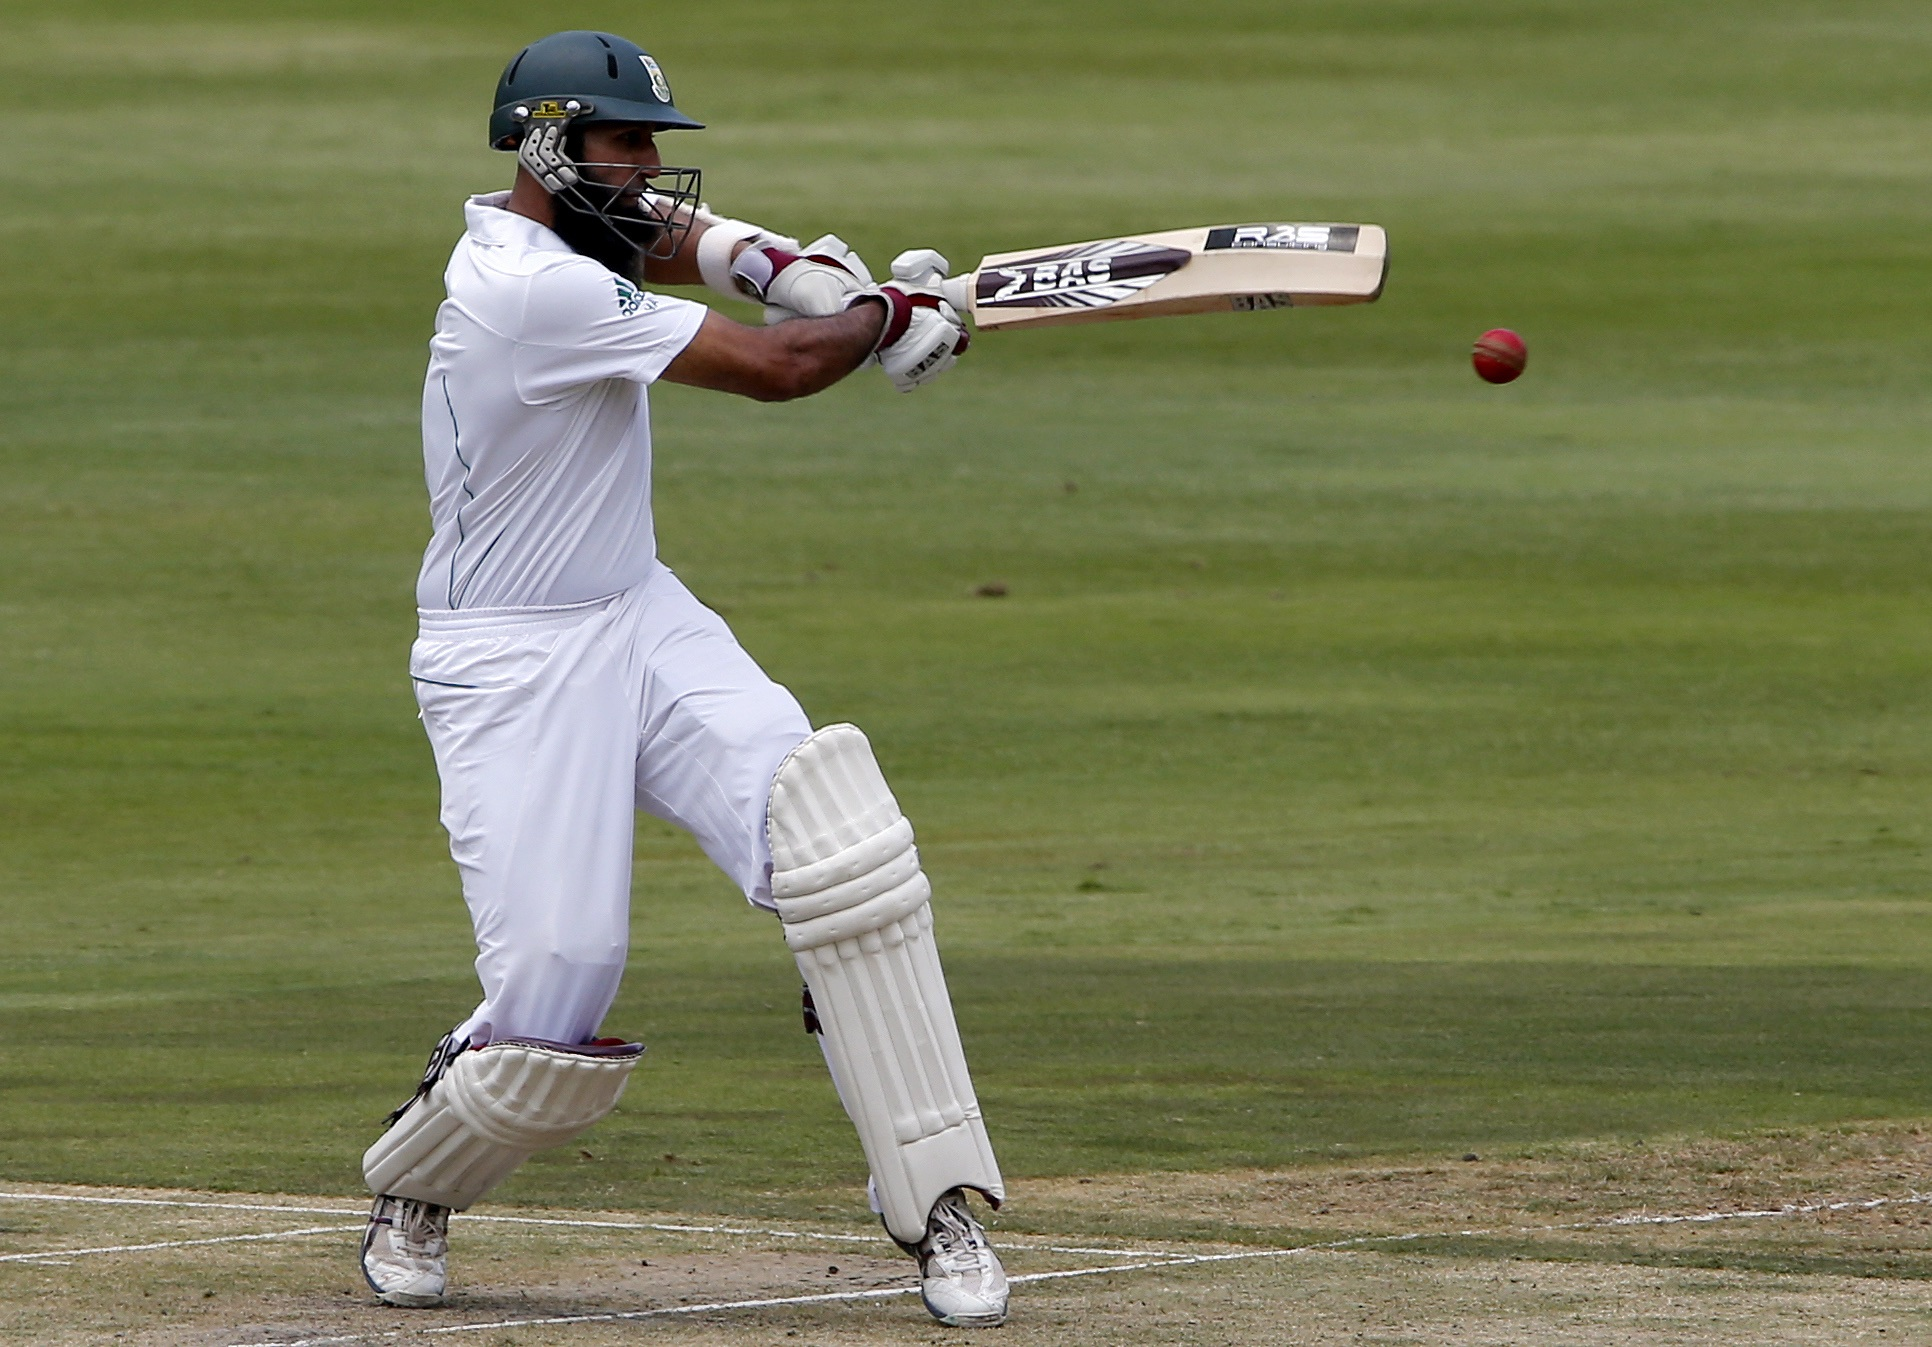 Image supplied by Actions Images/ Mike Hutchings.  Hashim Amla, South Africa's Test cricket captain, pulls a short ball against Pakistan in the first Test in Johannesburg, in 2013.  Image supplied by Actions Images/ Mike Hutchings.